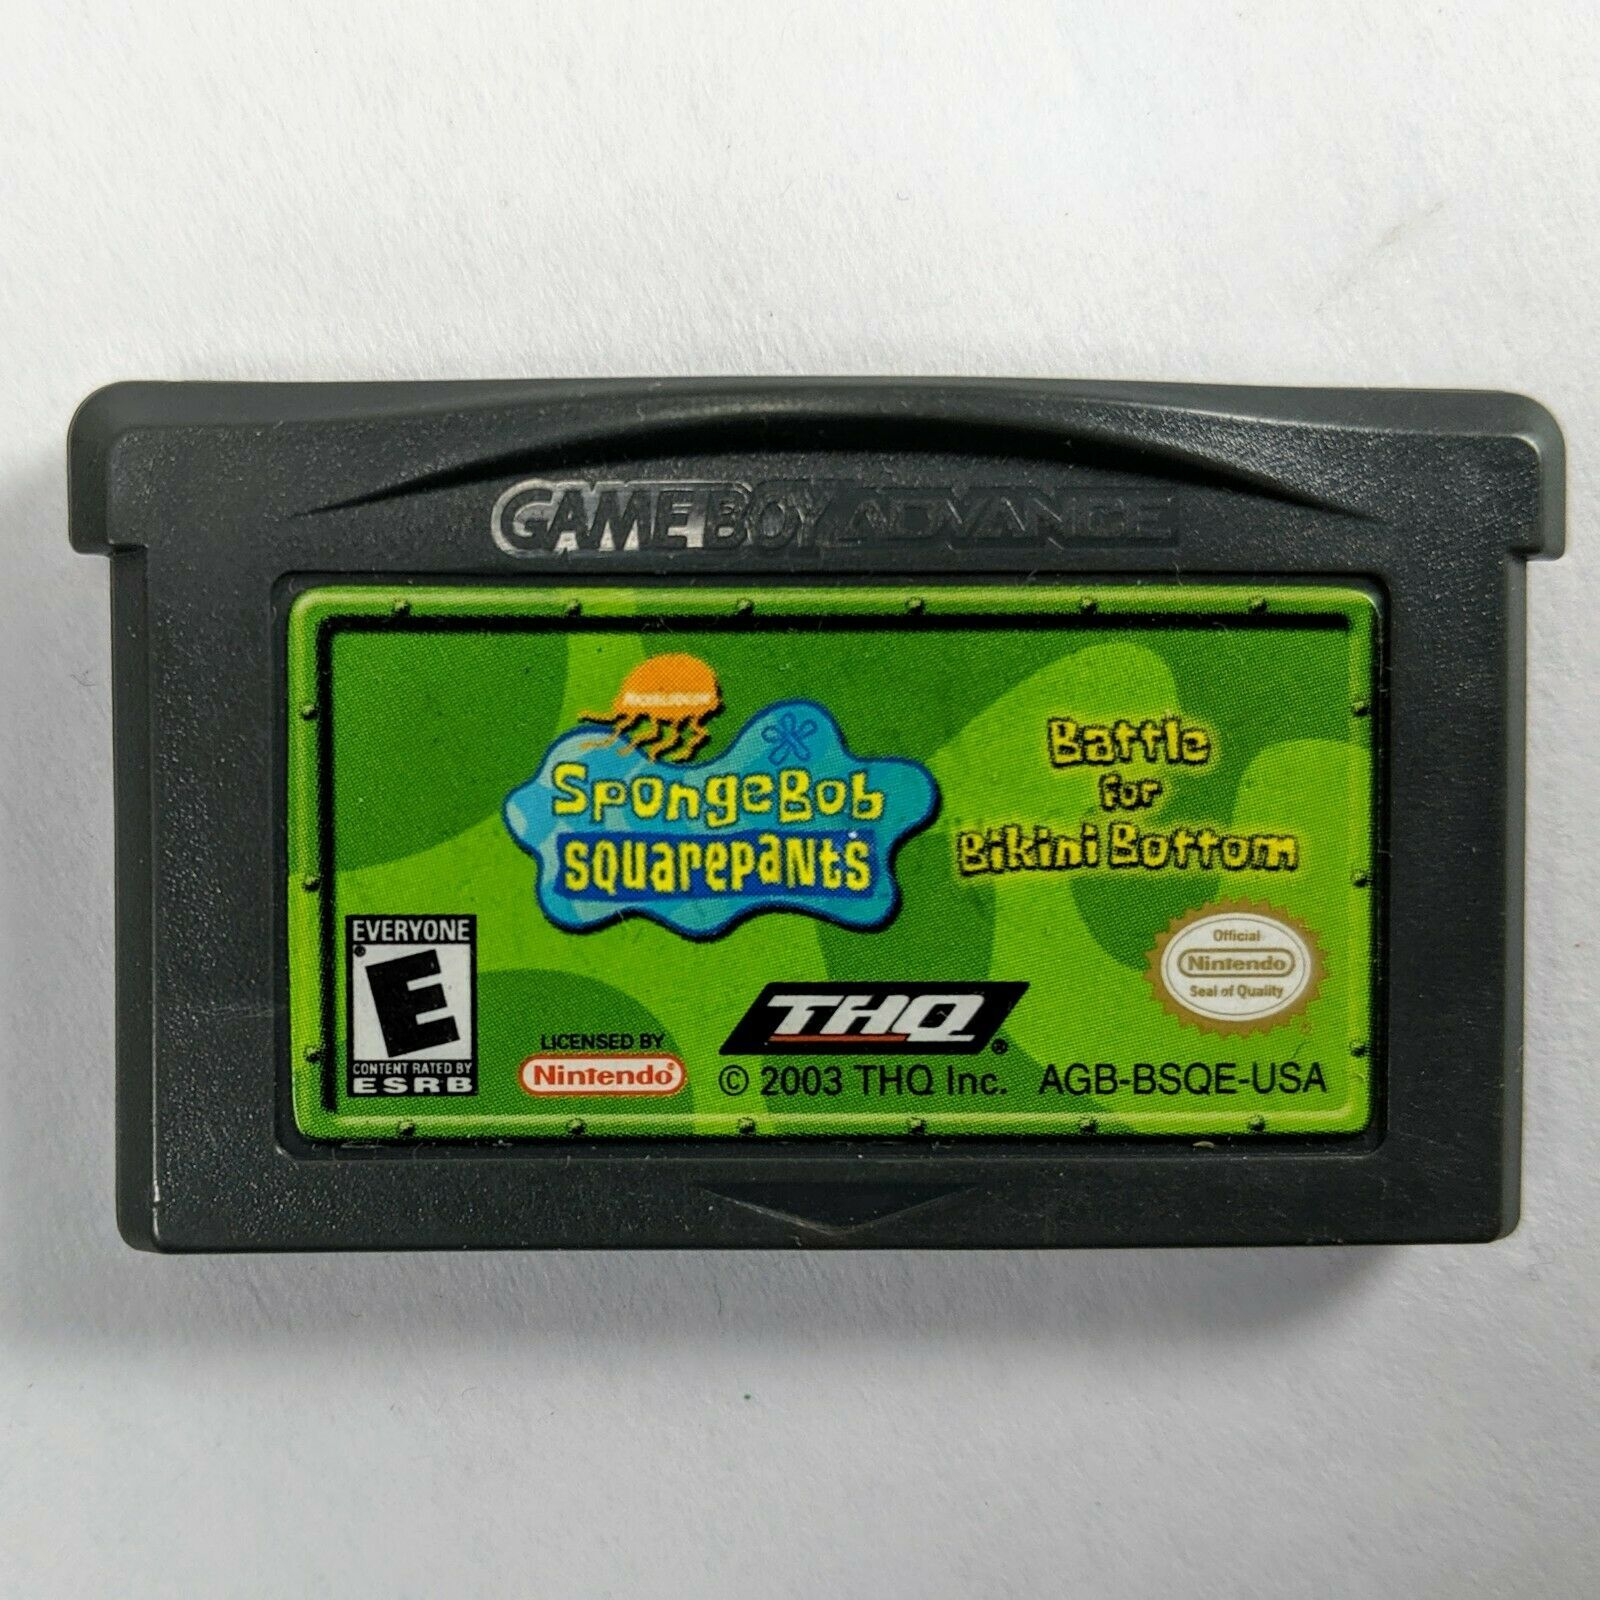 SpongeBob SquarePants: Battle for Bikini Bottom for Nintendo Game Boy Advance